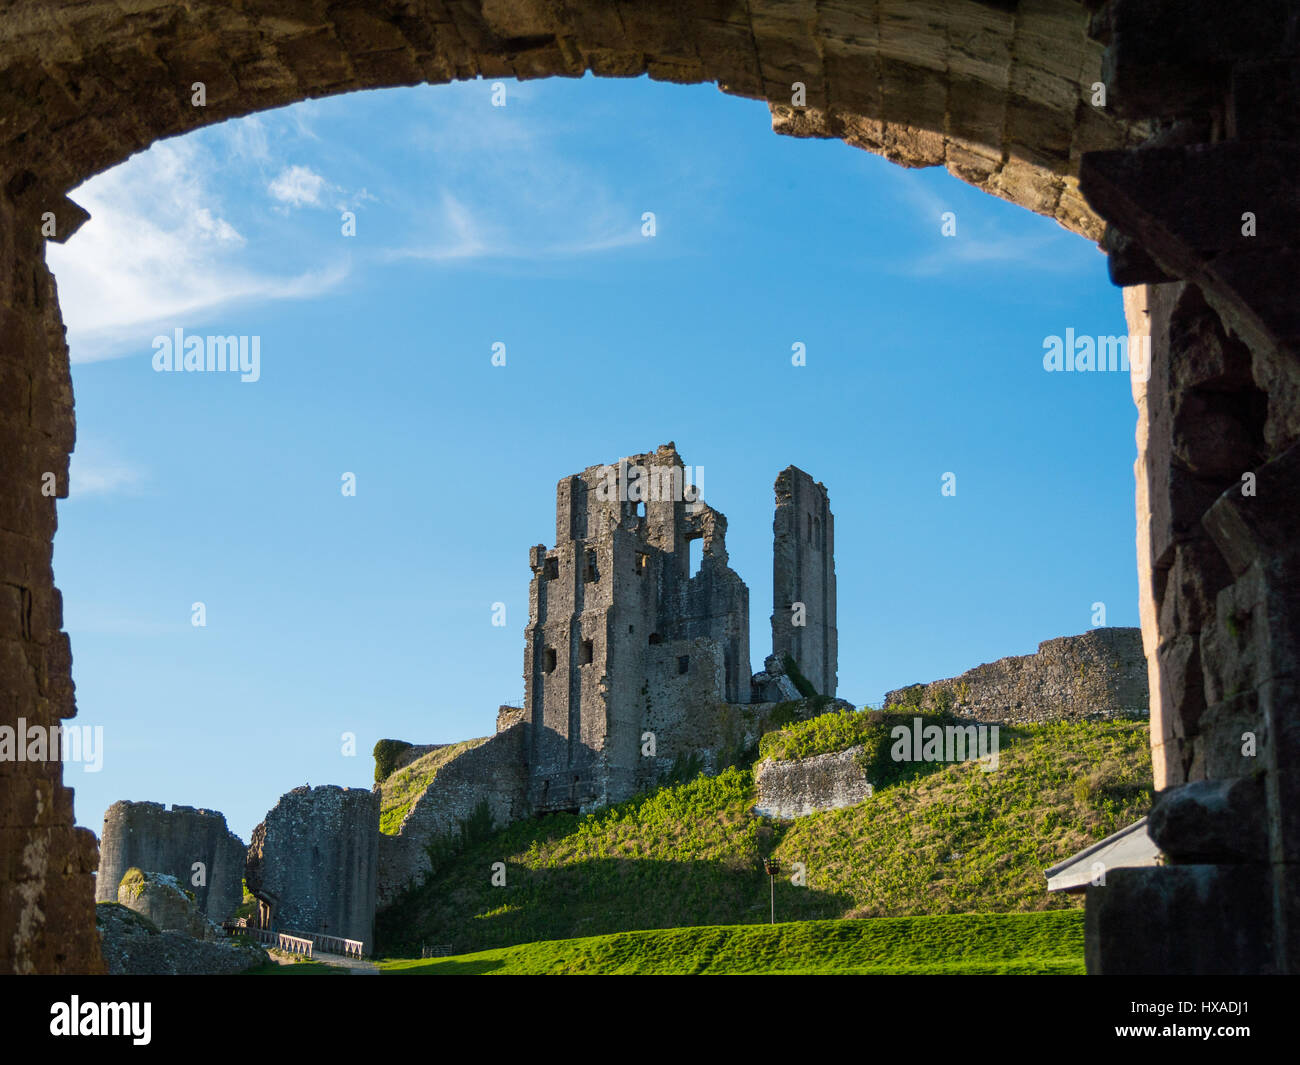 Historique Le château de Corfe, remainds de Corfe Castle, à l'île de Purbeck, Dorset, UK Photo Stock